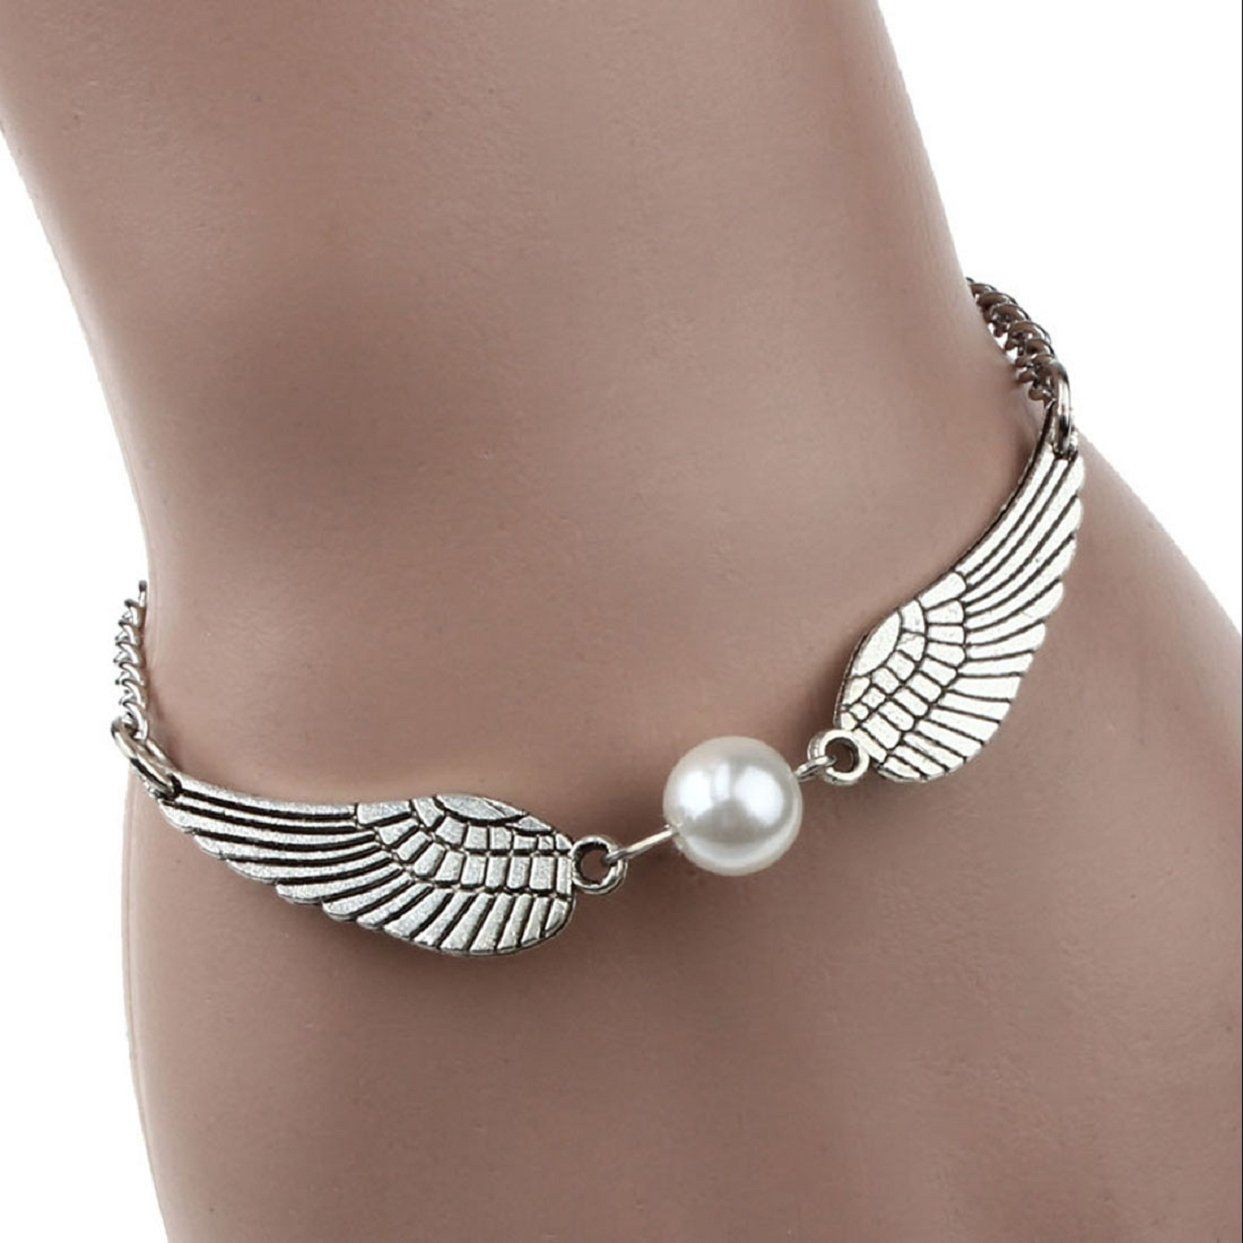 263414992e17 Lowpricenice(TM) Silver Infinity Retro Pearl Angel Wings Jewelry ...